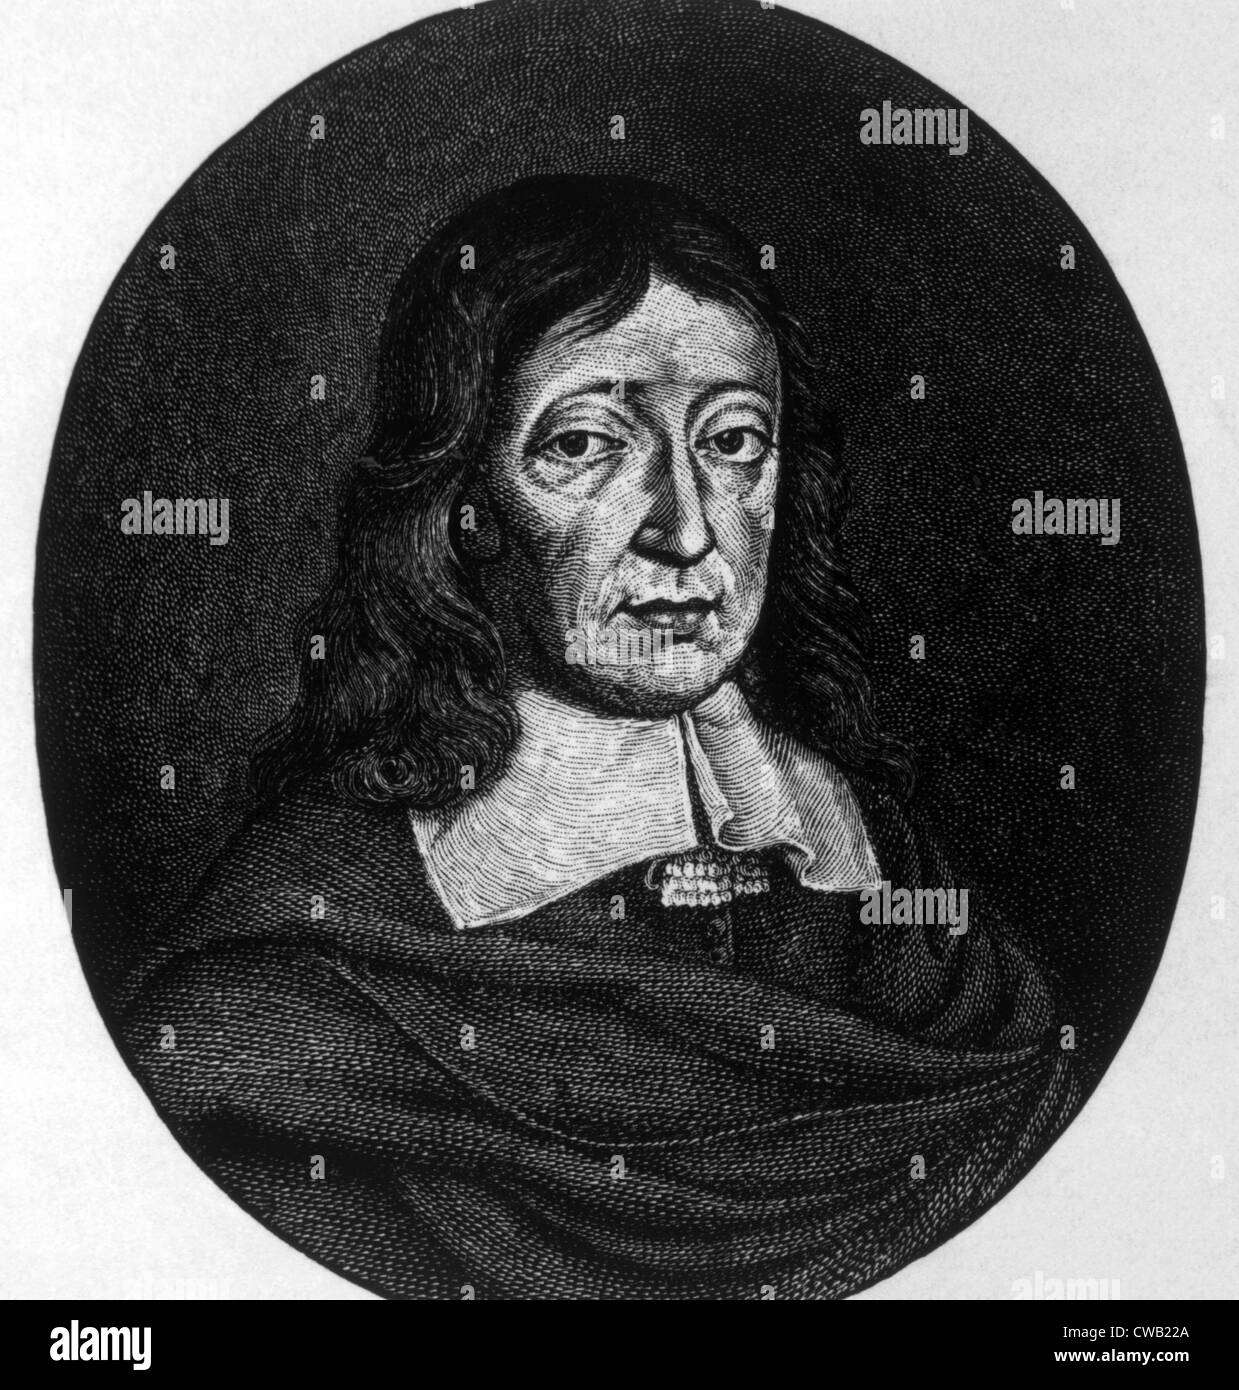 John Milton (1608-1674), author of 'Paradise Lost,' engraving depicting him at age 62, 1670 - Stock Image